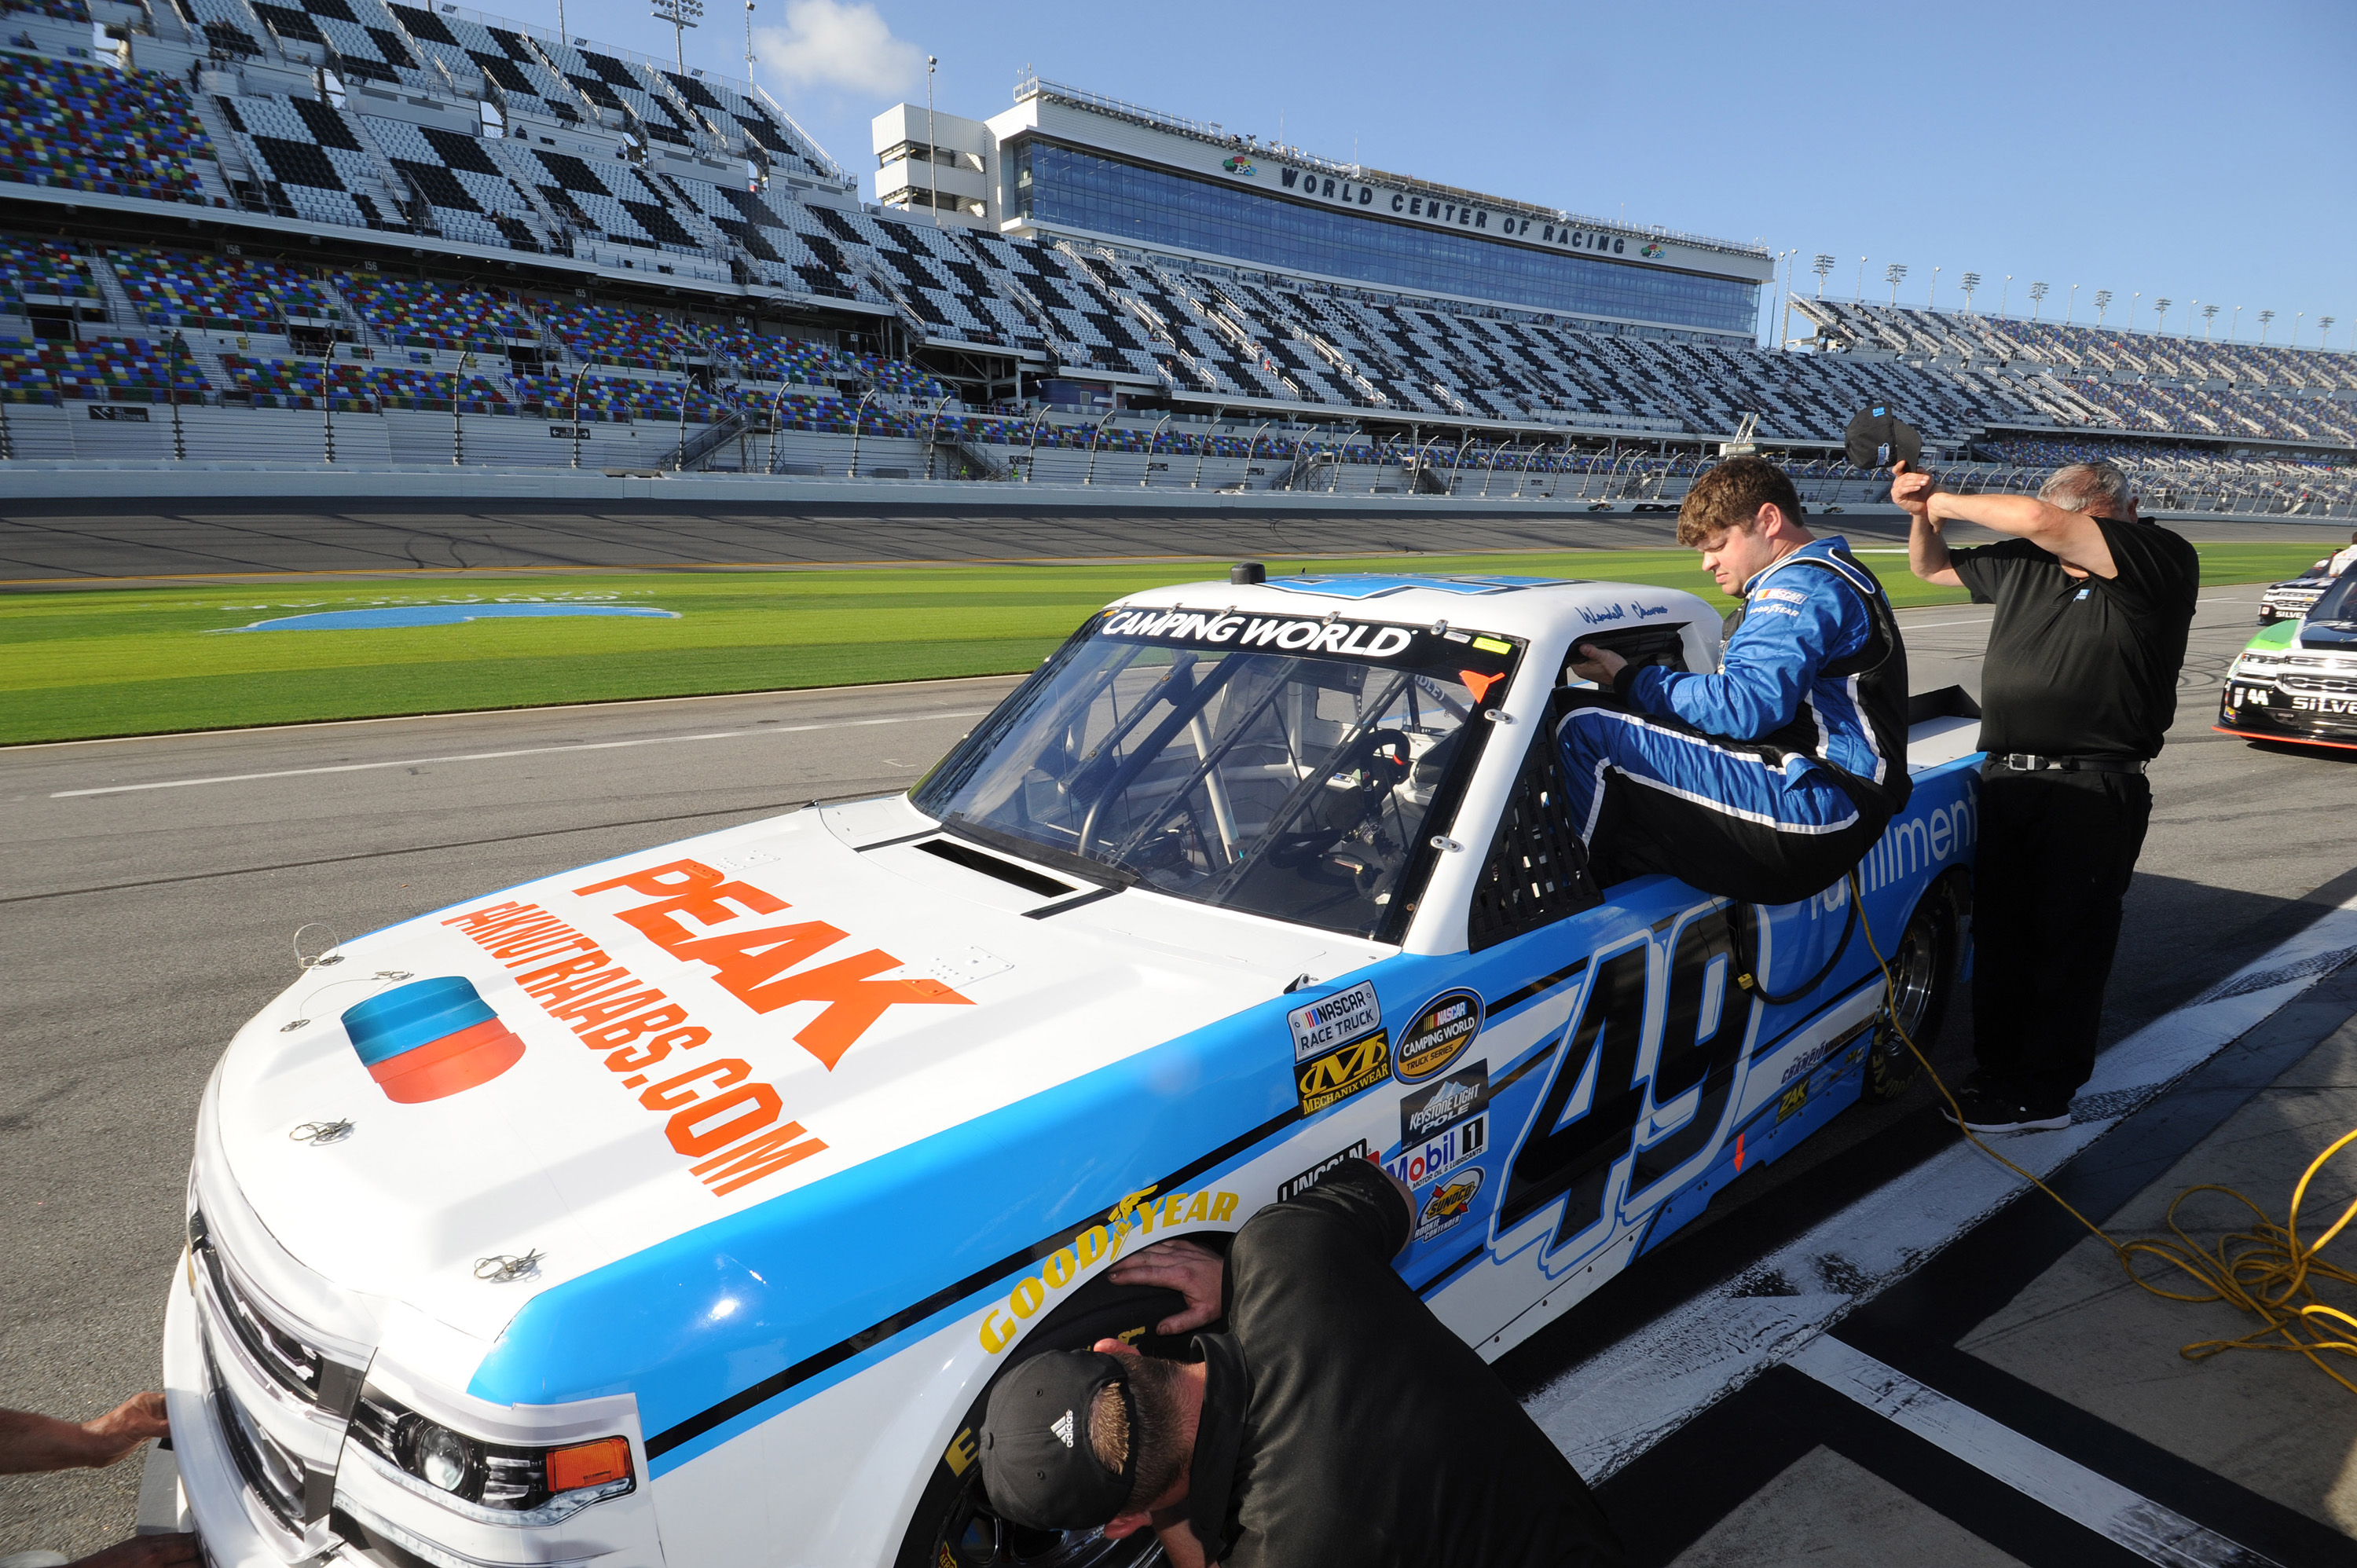 Peak Nutritional Products at the 2017 Daytona Camping World Truck Series Race